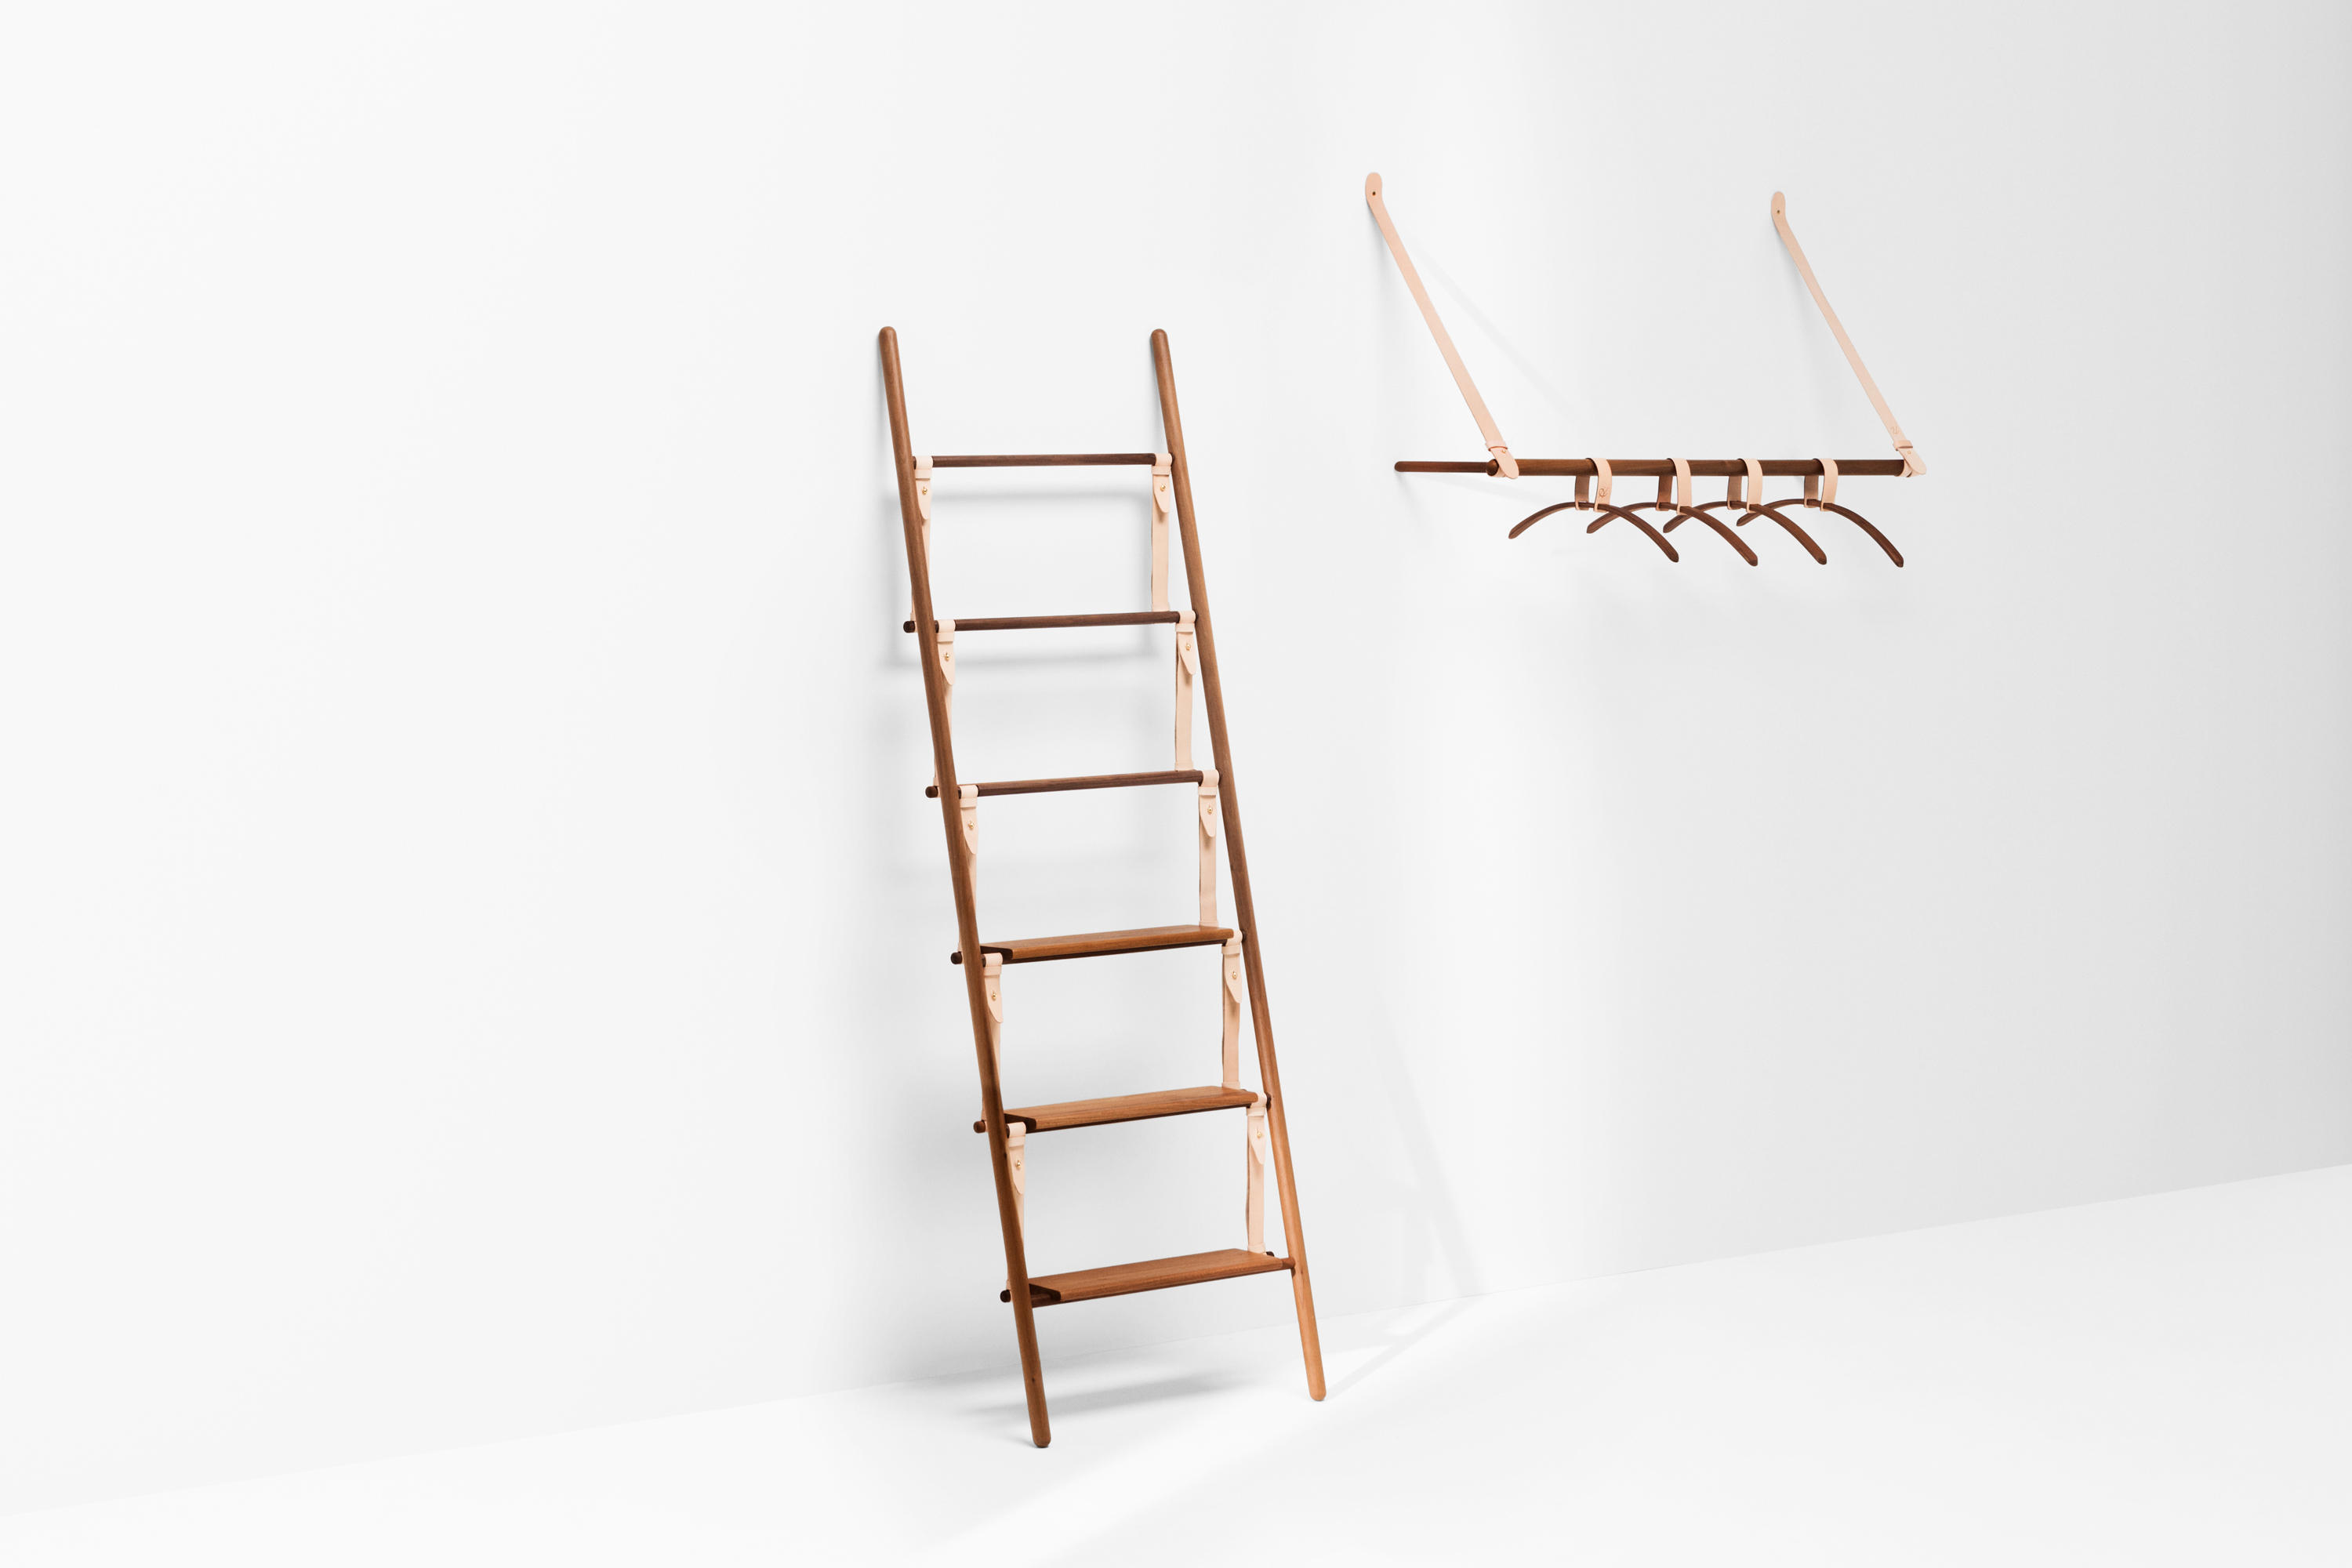 and racks corner stainless coatrack hang dual interior that ceiling clothing as idea make can coat up from hanger design rack steel the come rod minimalist hanging a these cords or they single